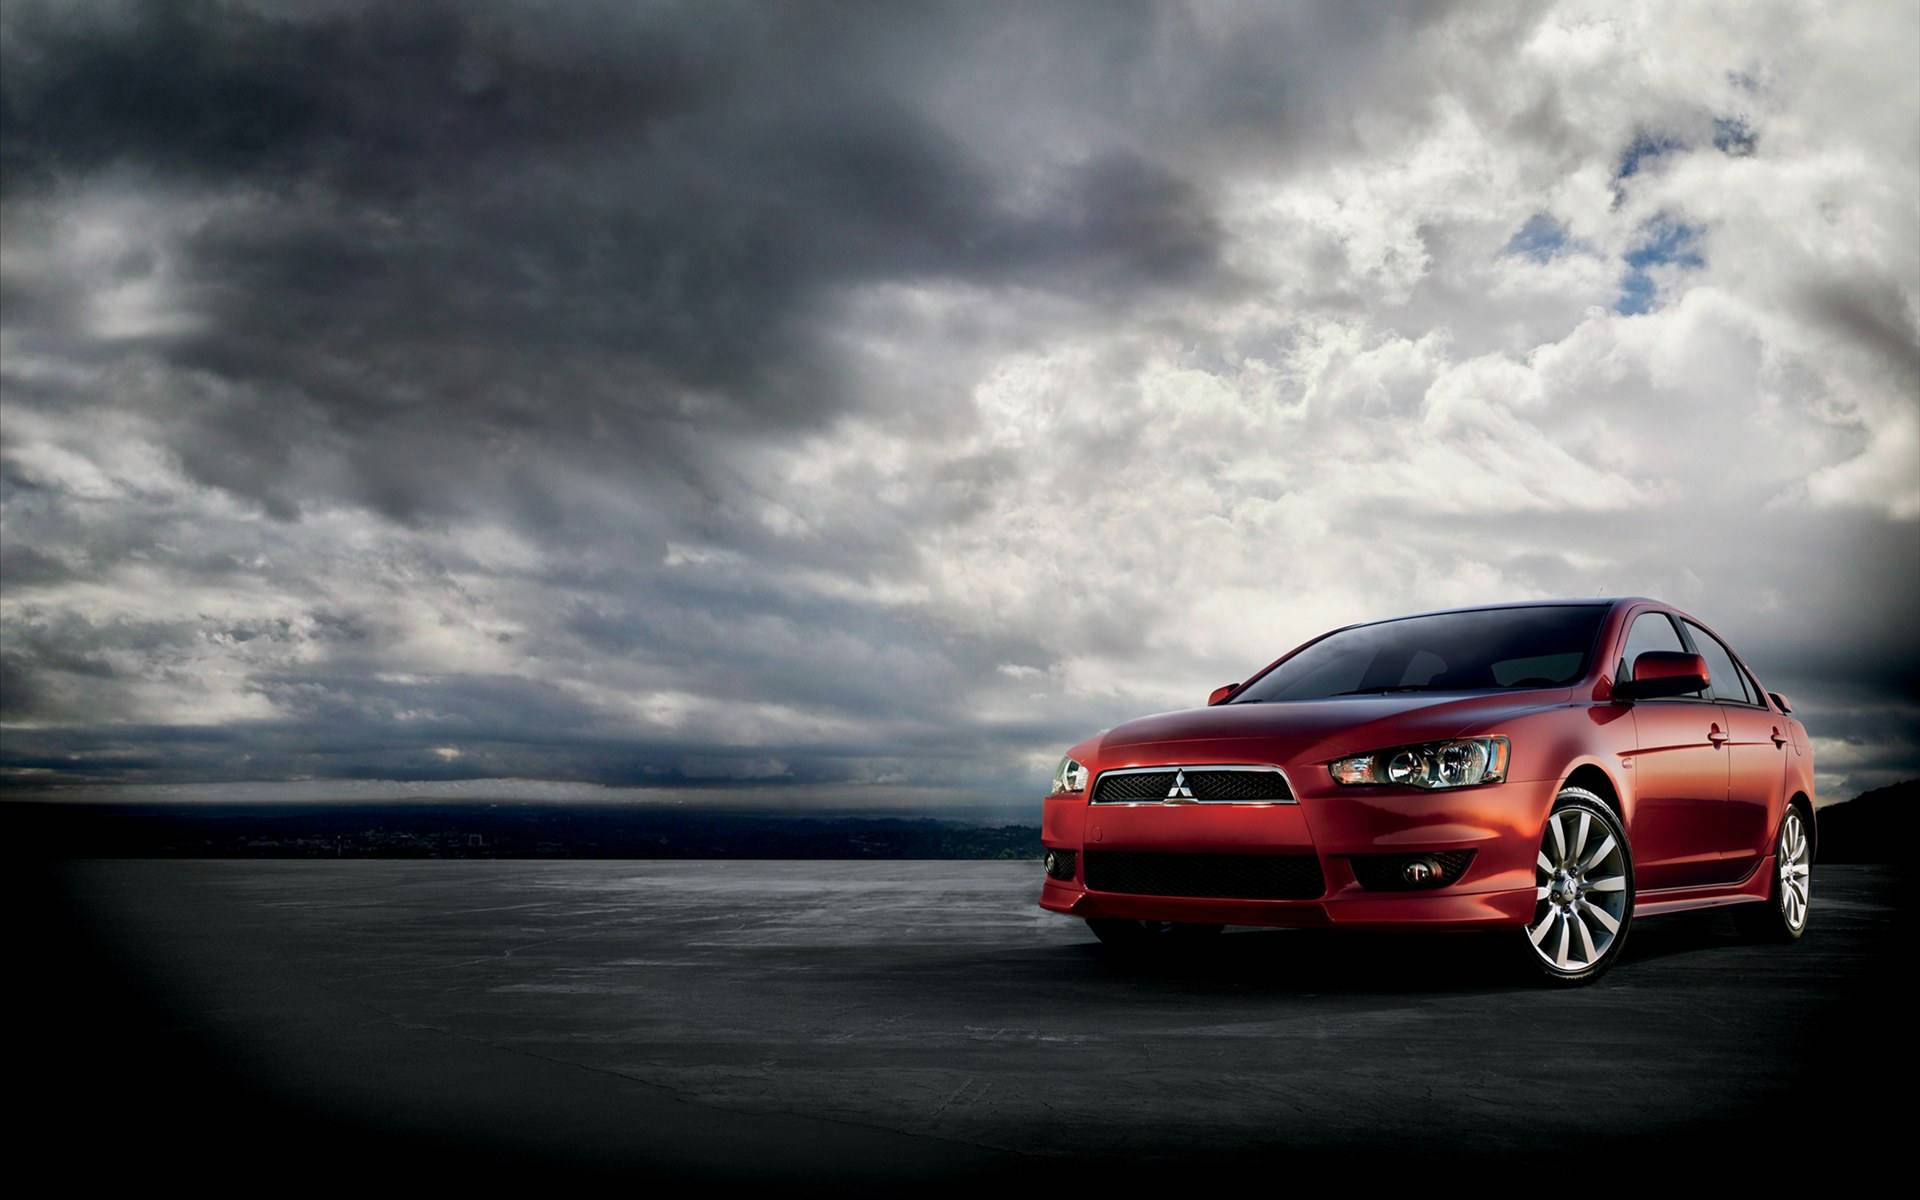 mitsubishi lancer wallpaper background